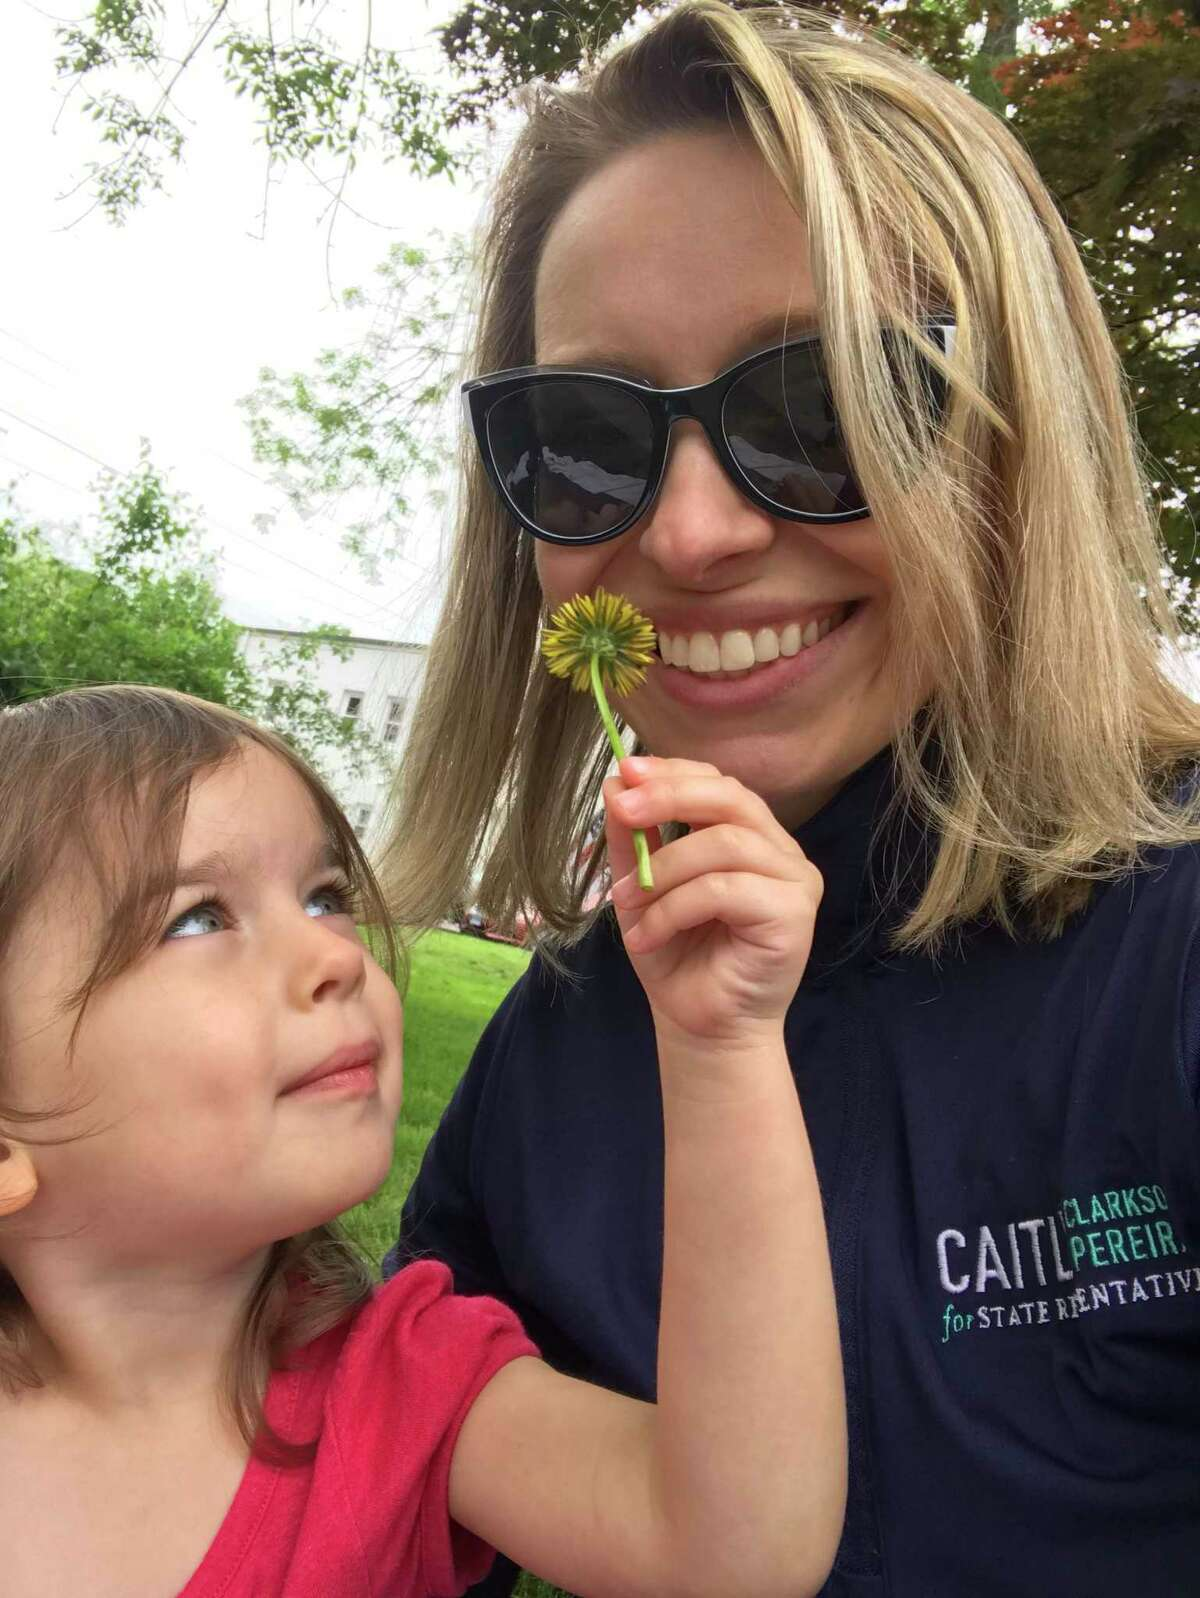 Caitlin Clarkson Pereira, an education professional, author, and mother of 3-year old Parker, ran to represent the 132nd district in Connecticut's House of Representatives. She pushed for campaign funds to be allowed to pay for child care.